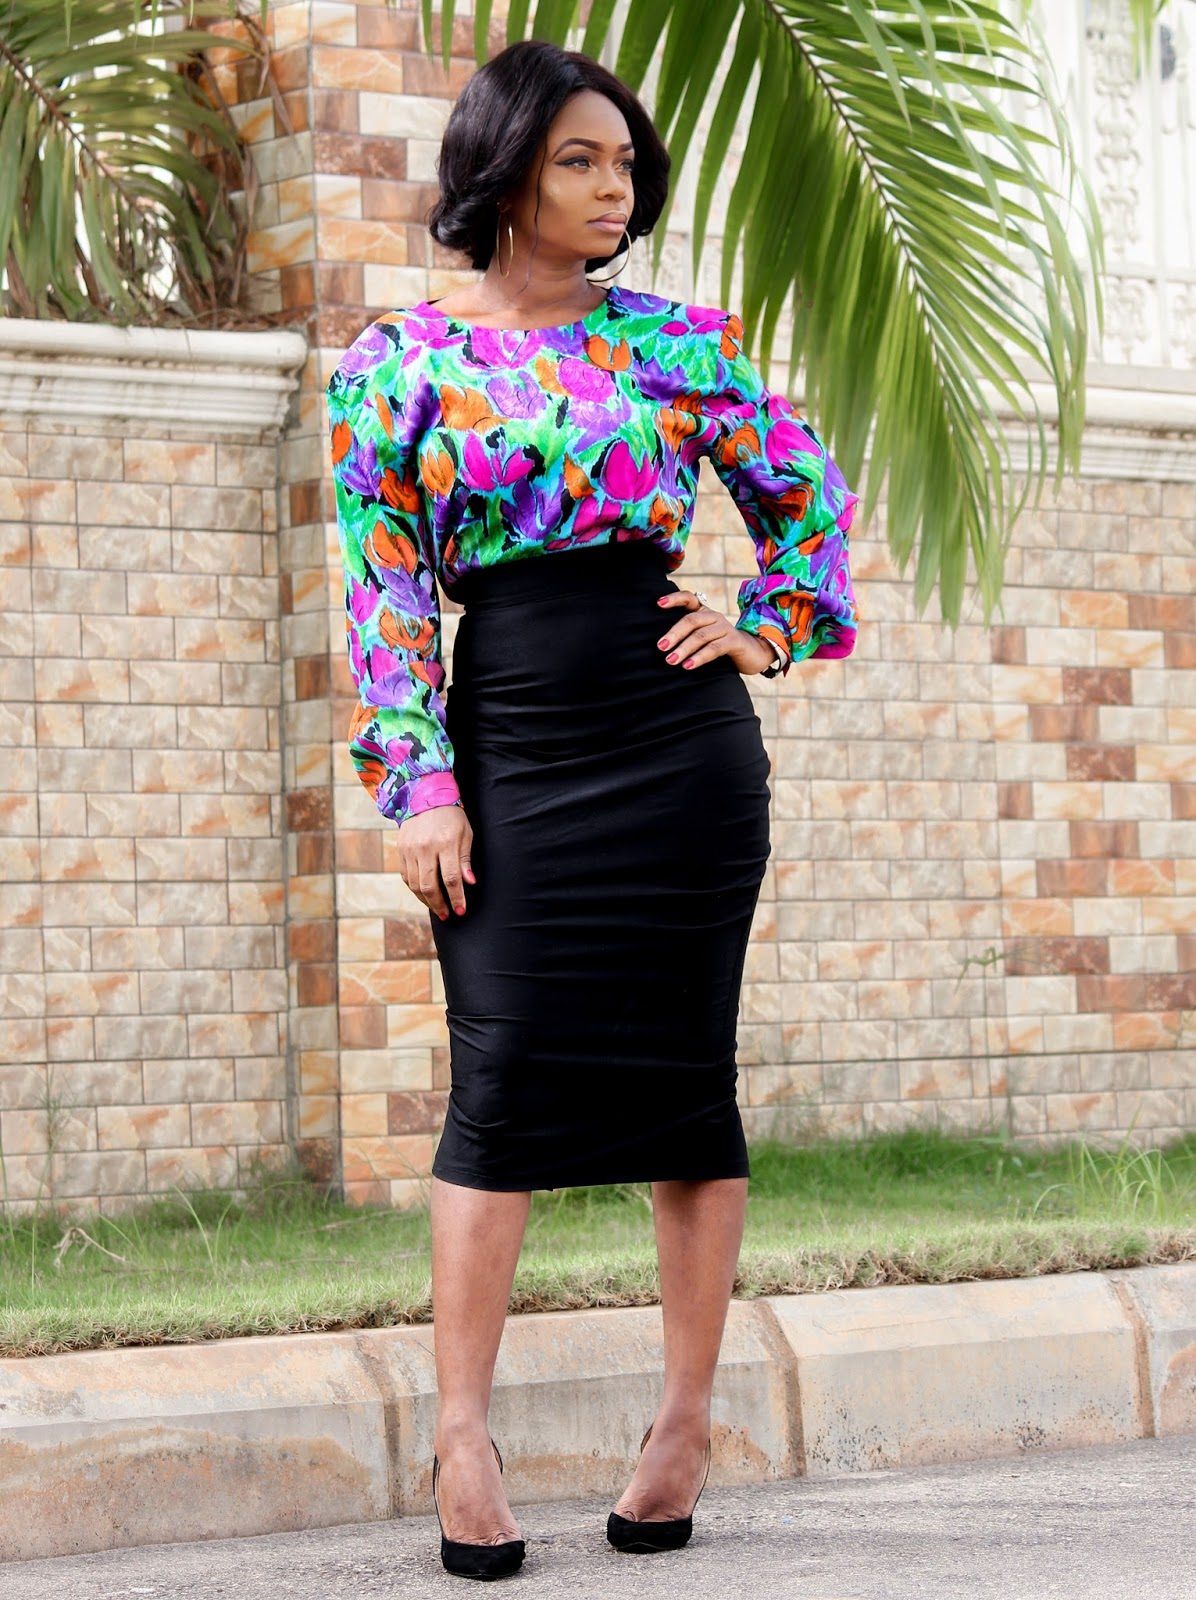 VINTAGE FLORAL - Vintage Floral Top from Vintage Closet and Black Pencil Skirt from Porshher